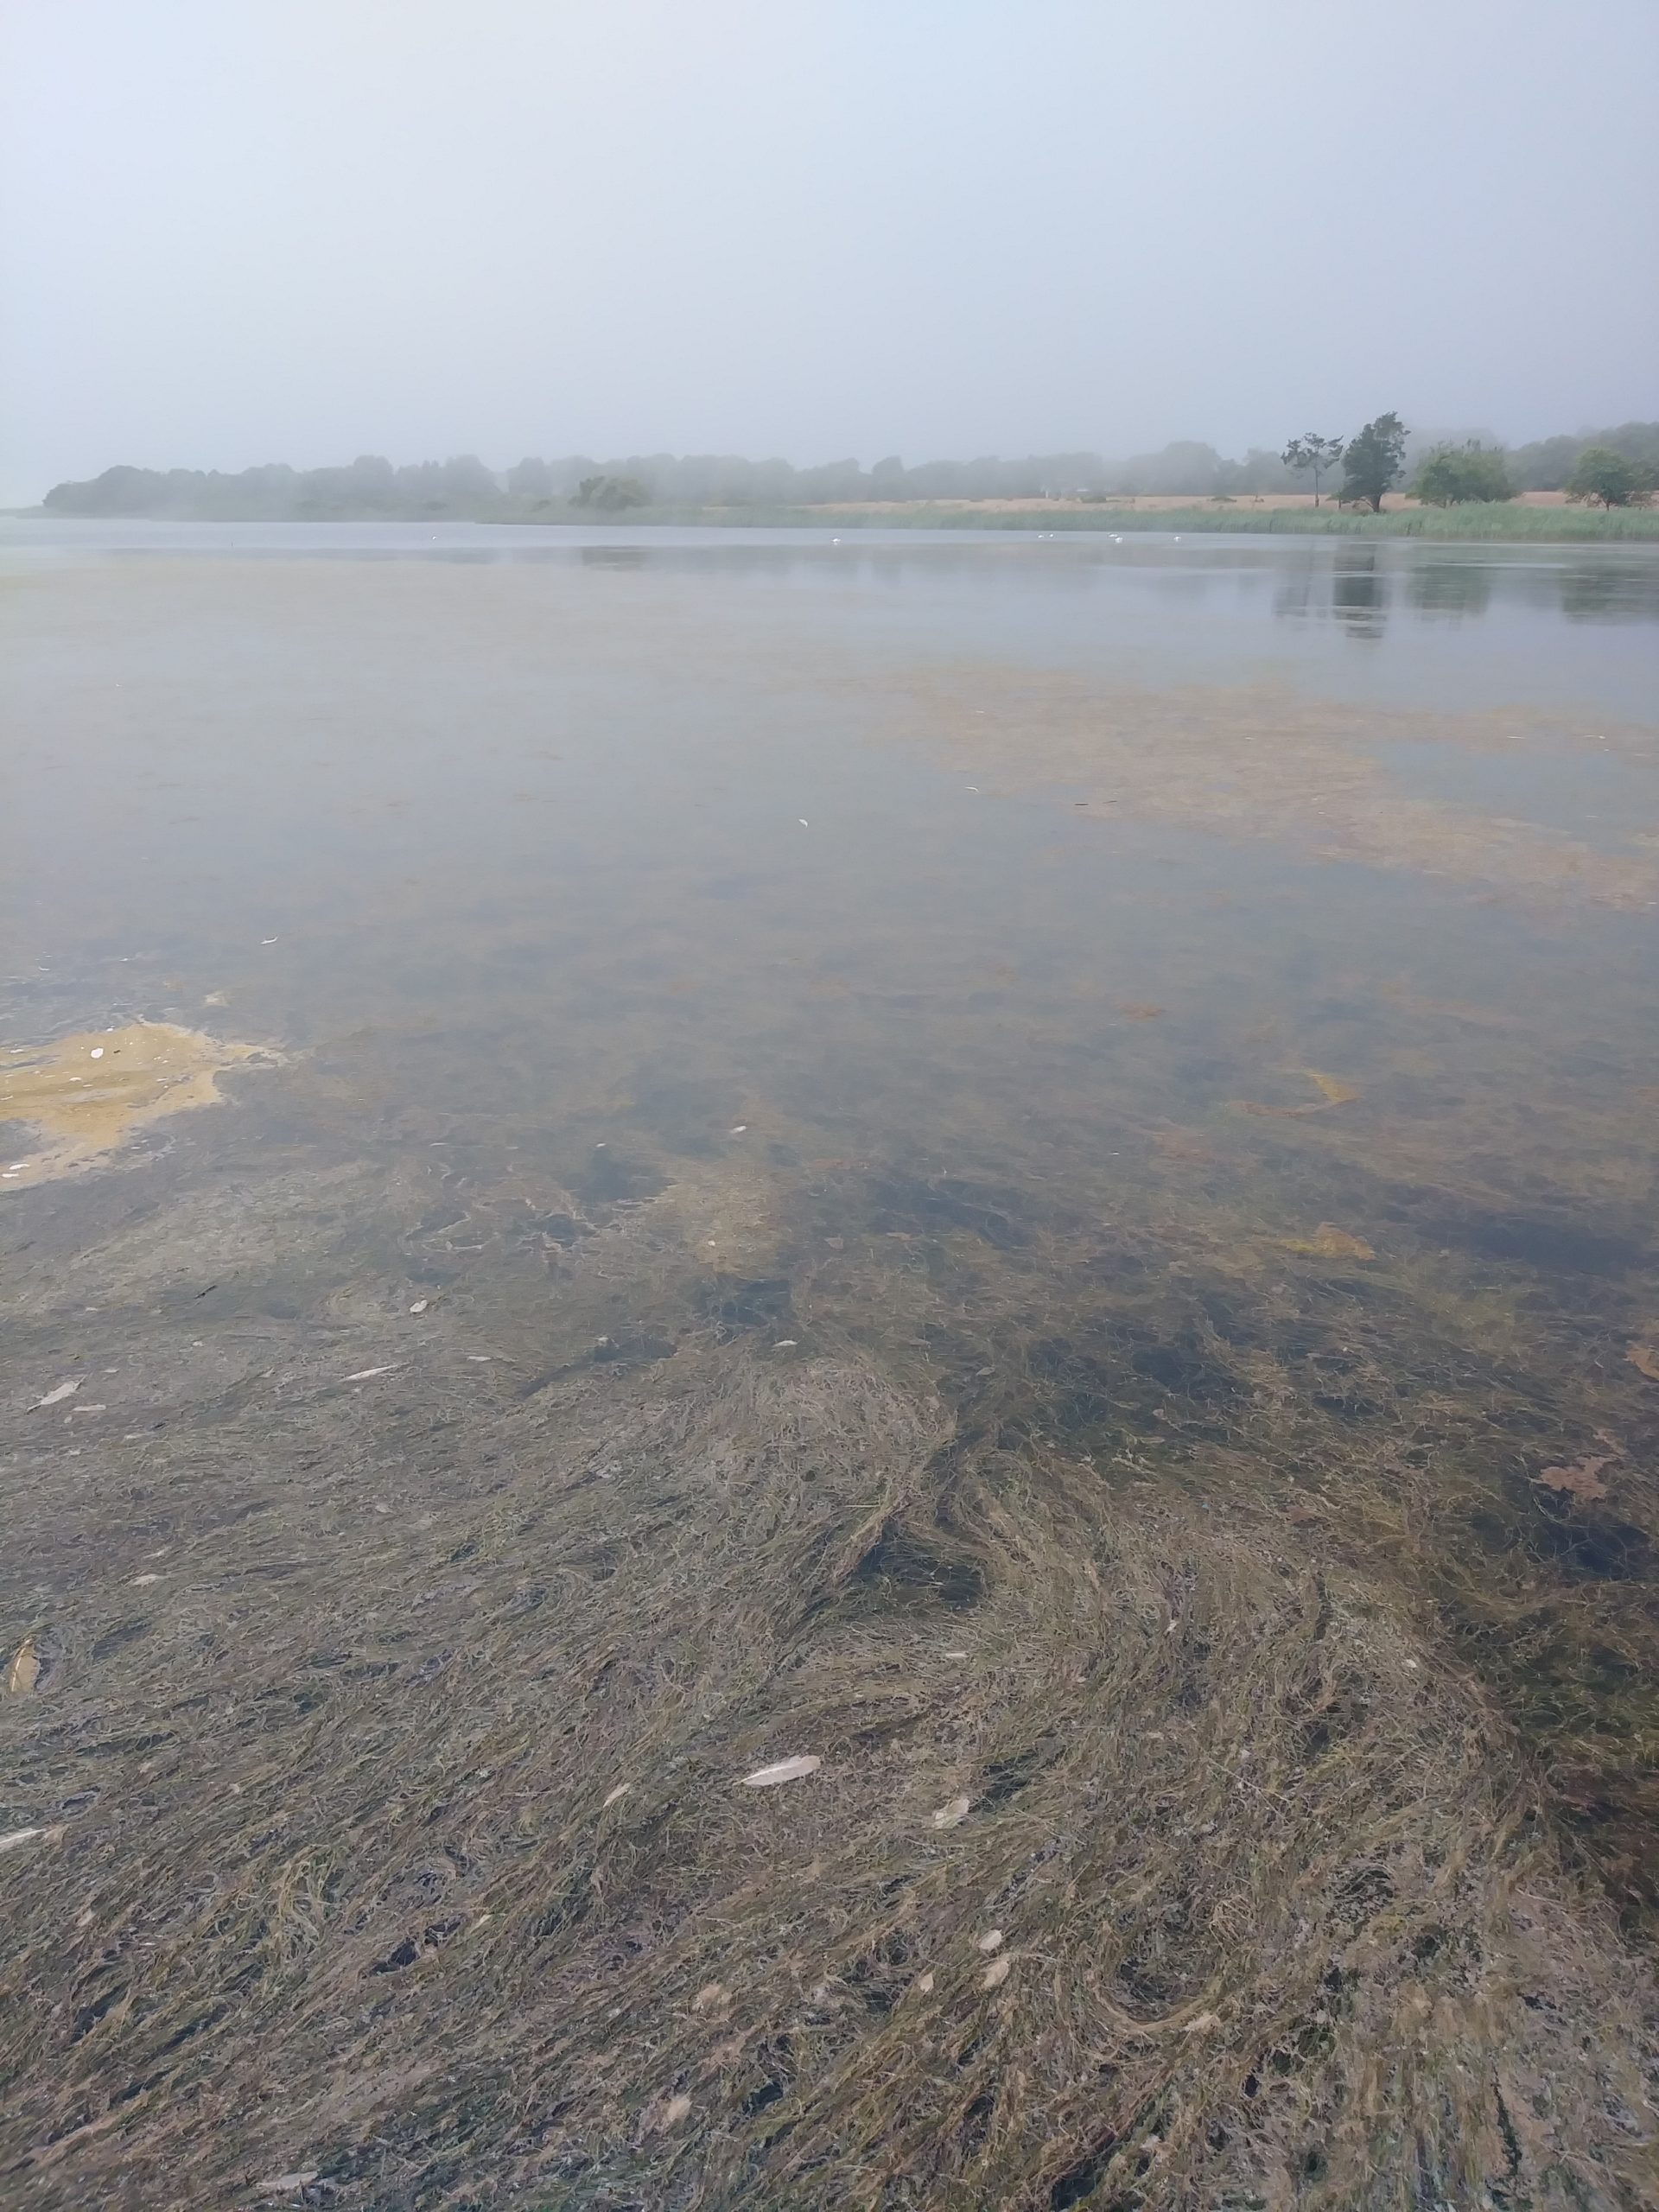 Dense matts of aquatic weeds have returned to Georgica Pond after an experimental removal program was stalled by state regulators and are causing a renewed decline in water quality.